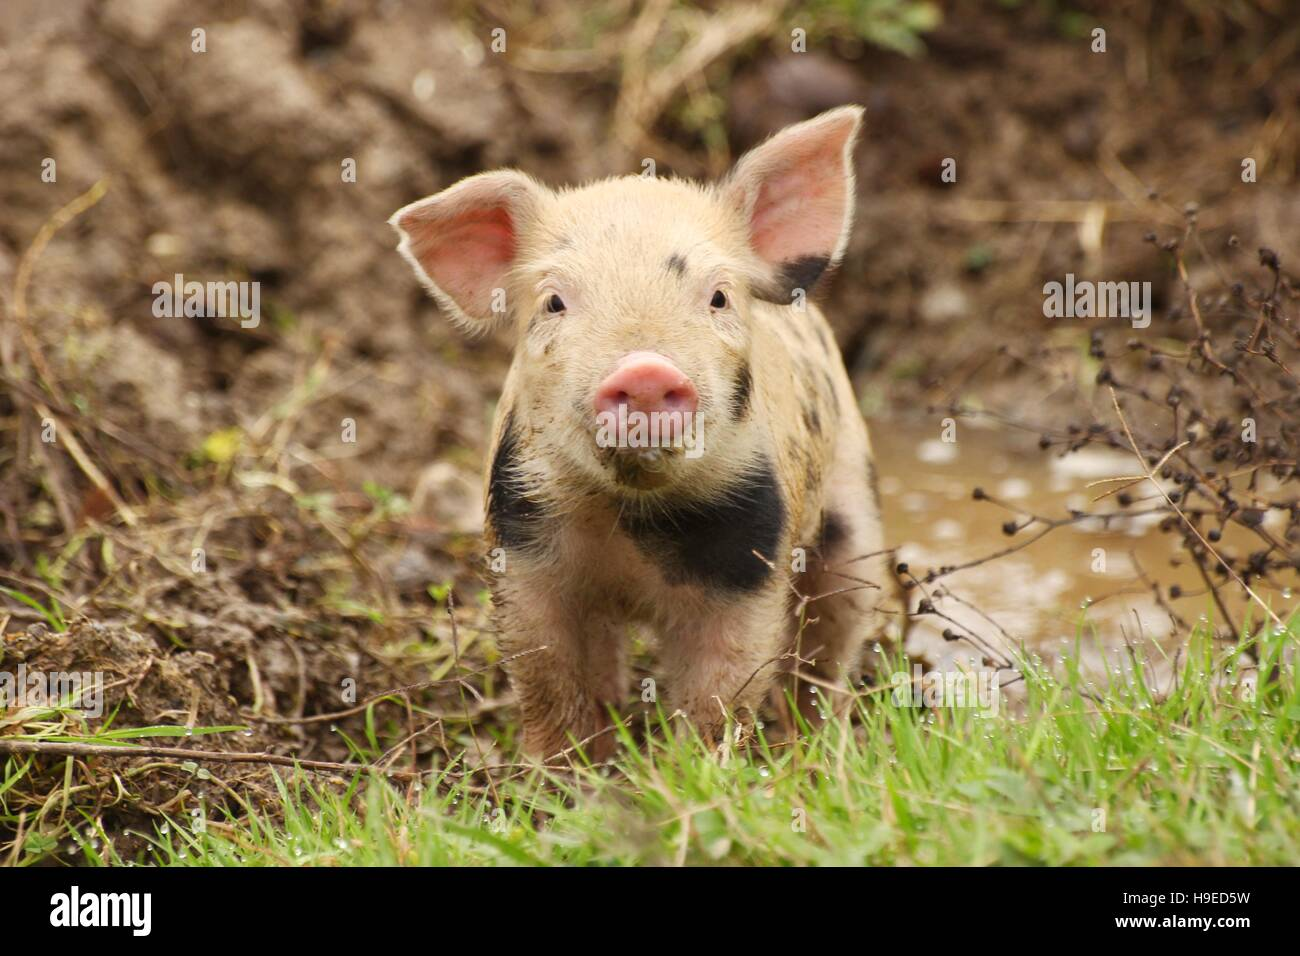 Cute piglet on the meadow - Stock Image